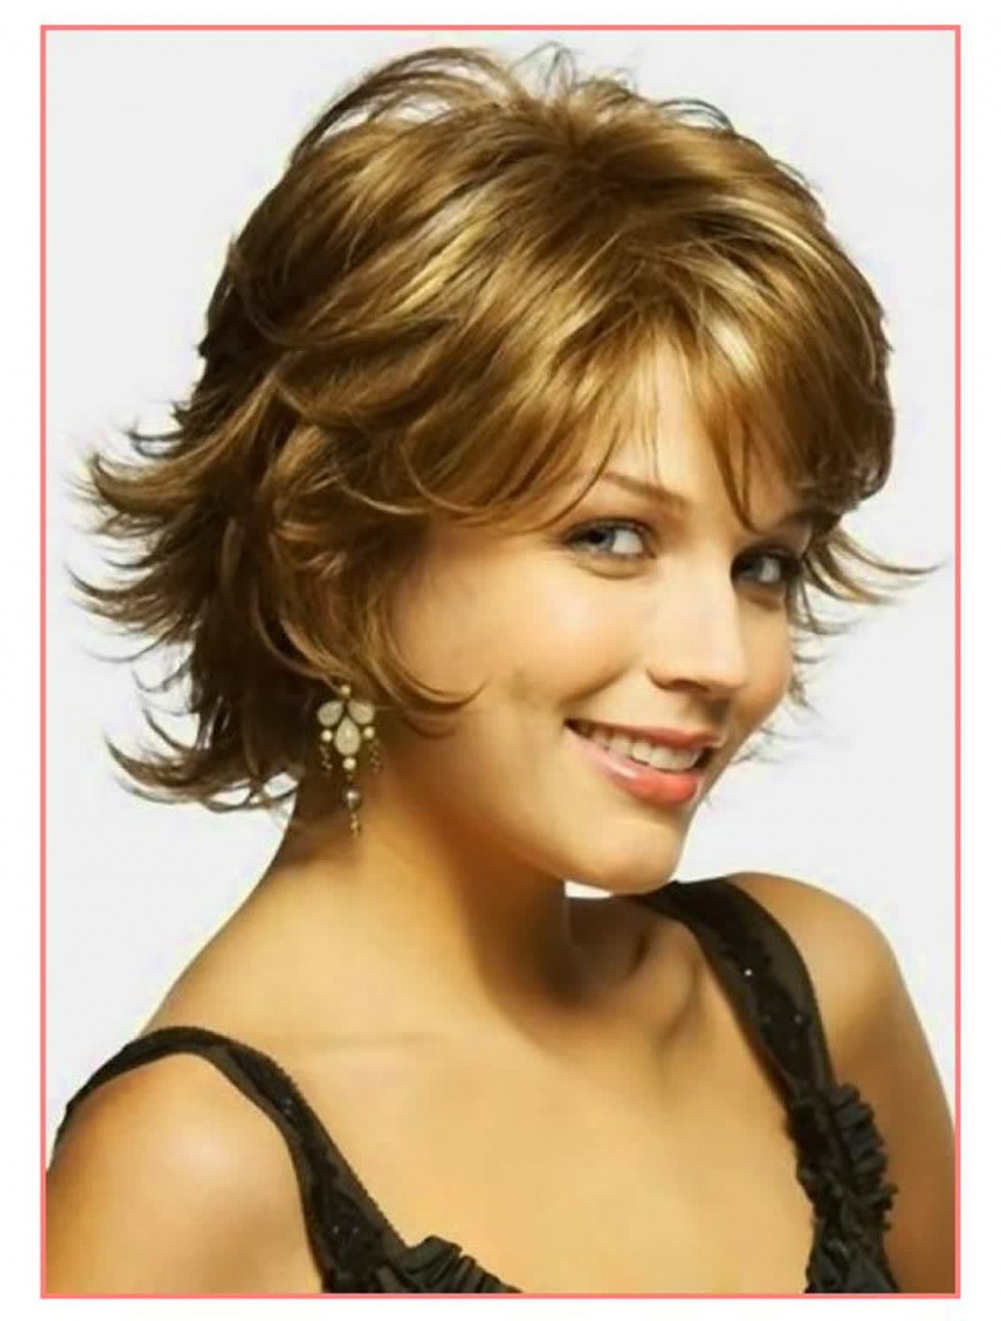 Hair Cuts : Awesome Best Cuts For Thick Fine Wavy Hair Haircut With Intended For Well Known Medium Haircuts For Thick Fine Hair (View 7 of 20)